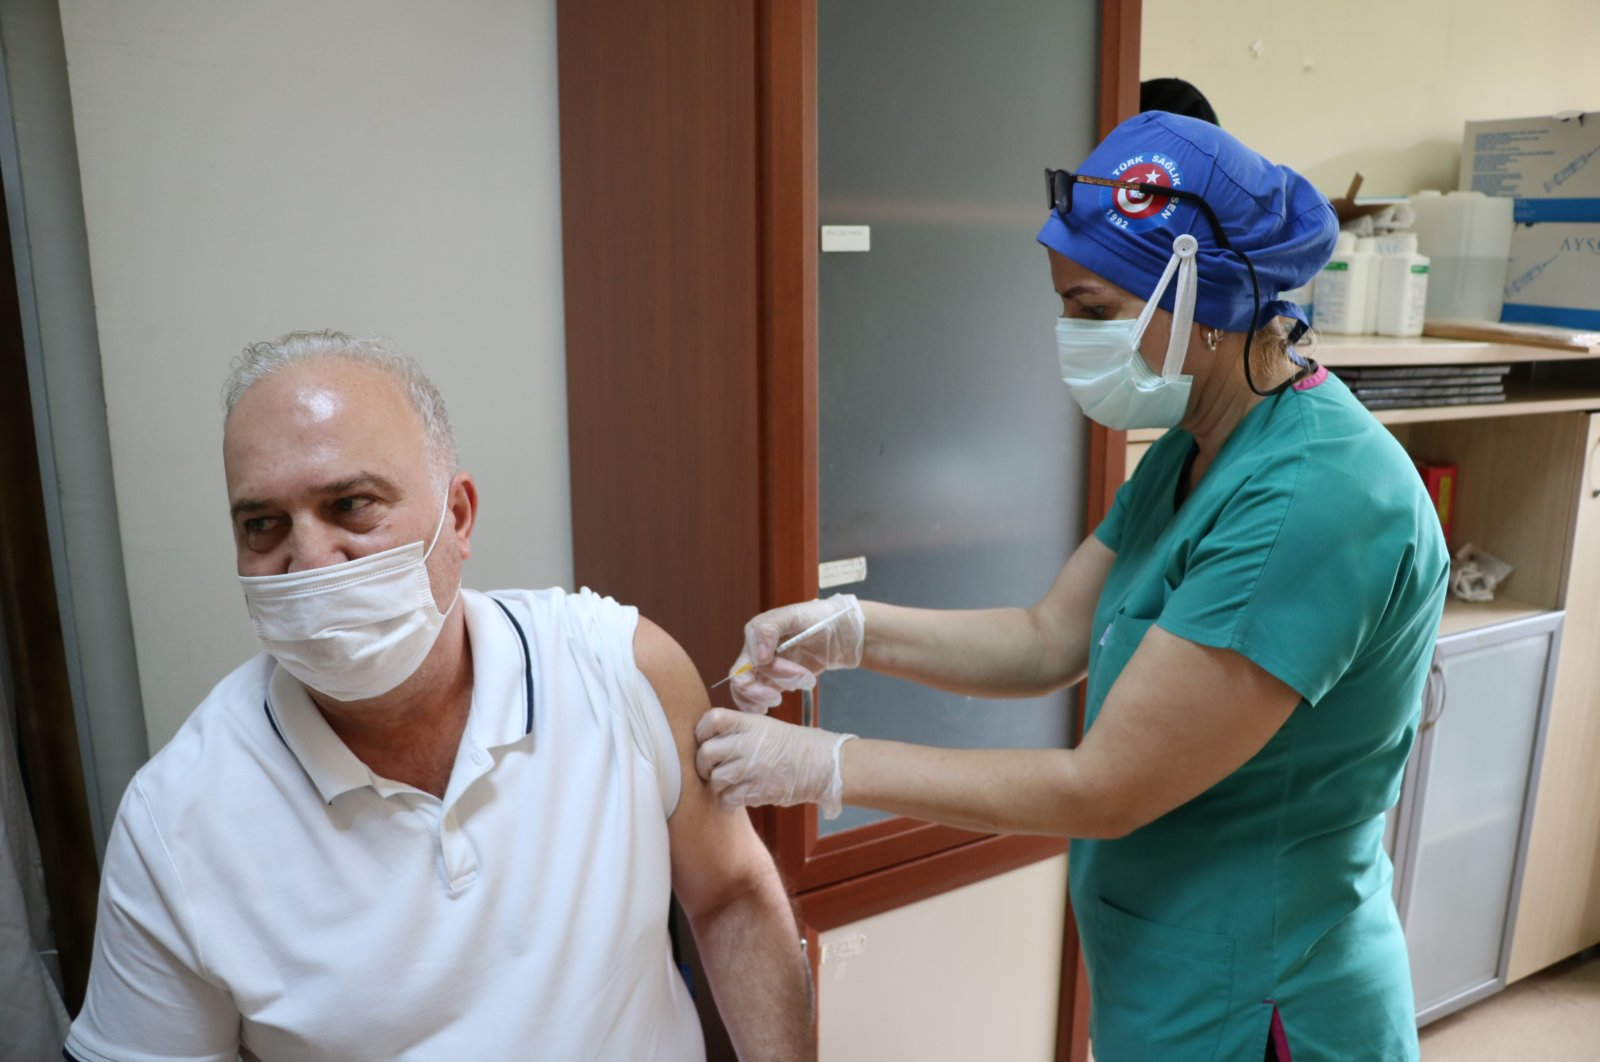 A man gets vaccinated at a hospital in Çanakkale, western Turkey, May 21, 2021. (AA PHOTO)